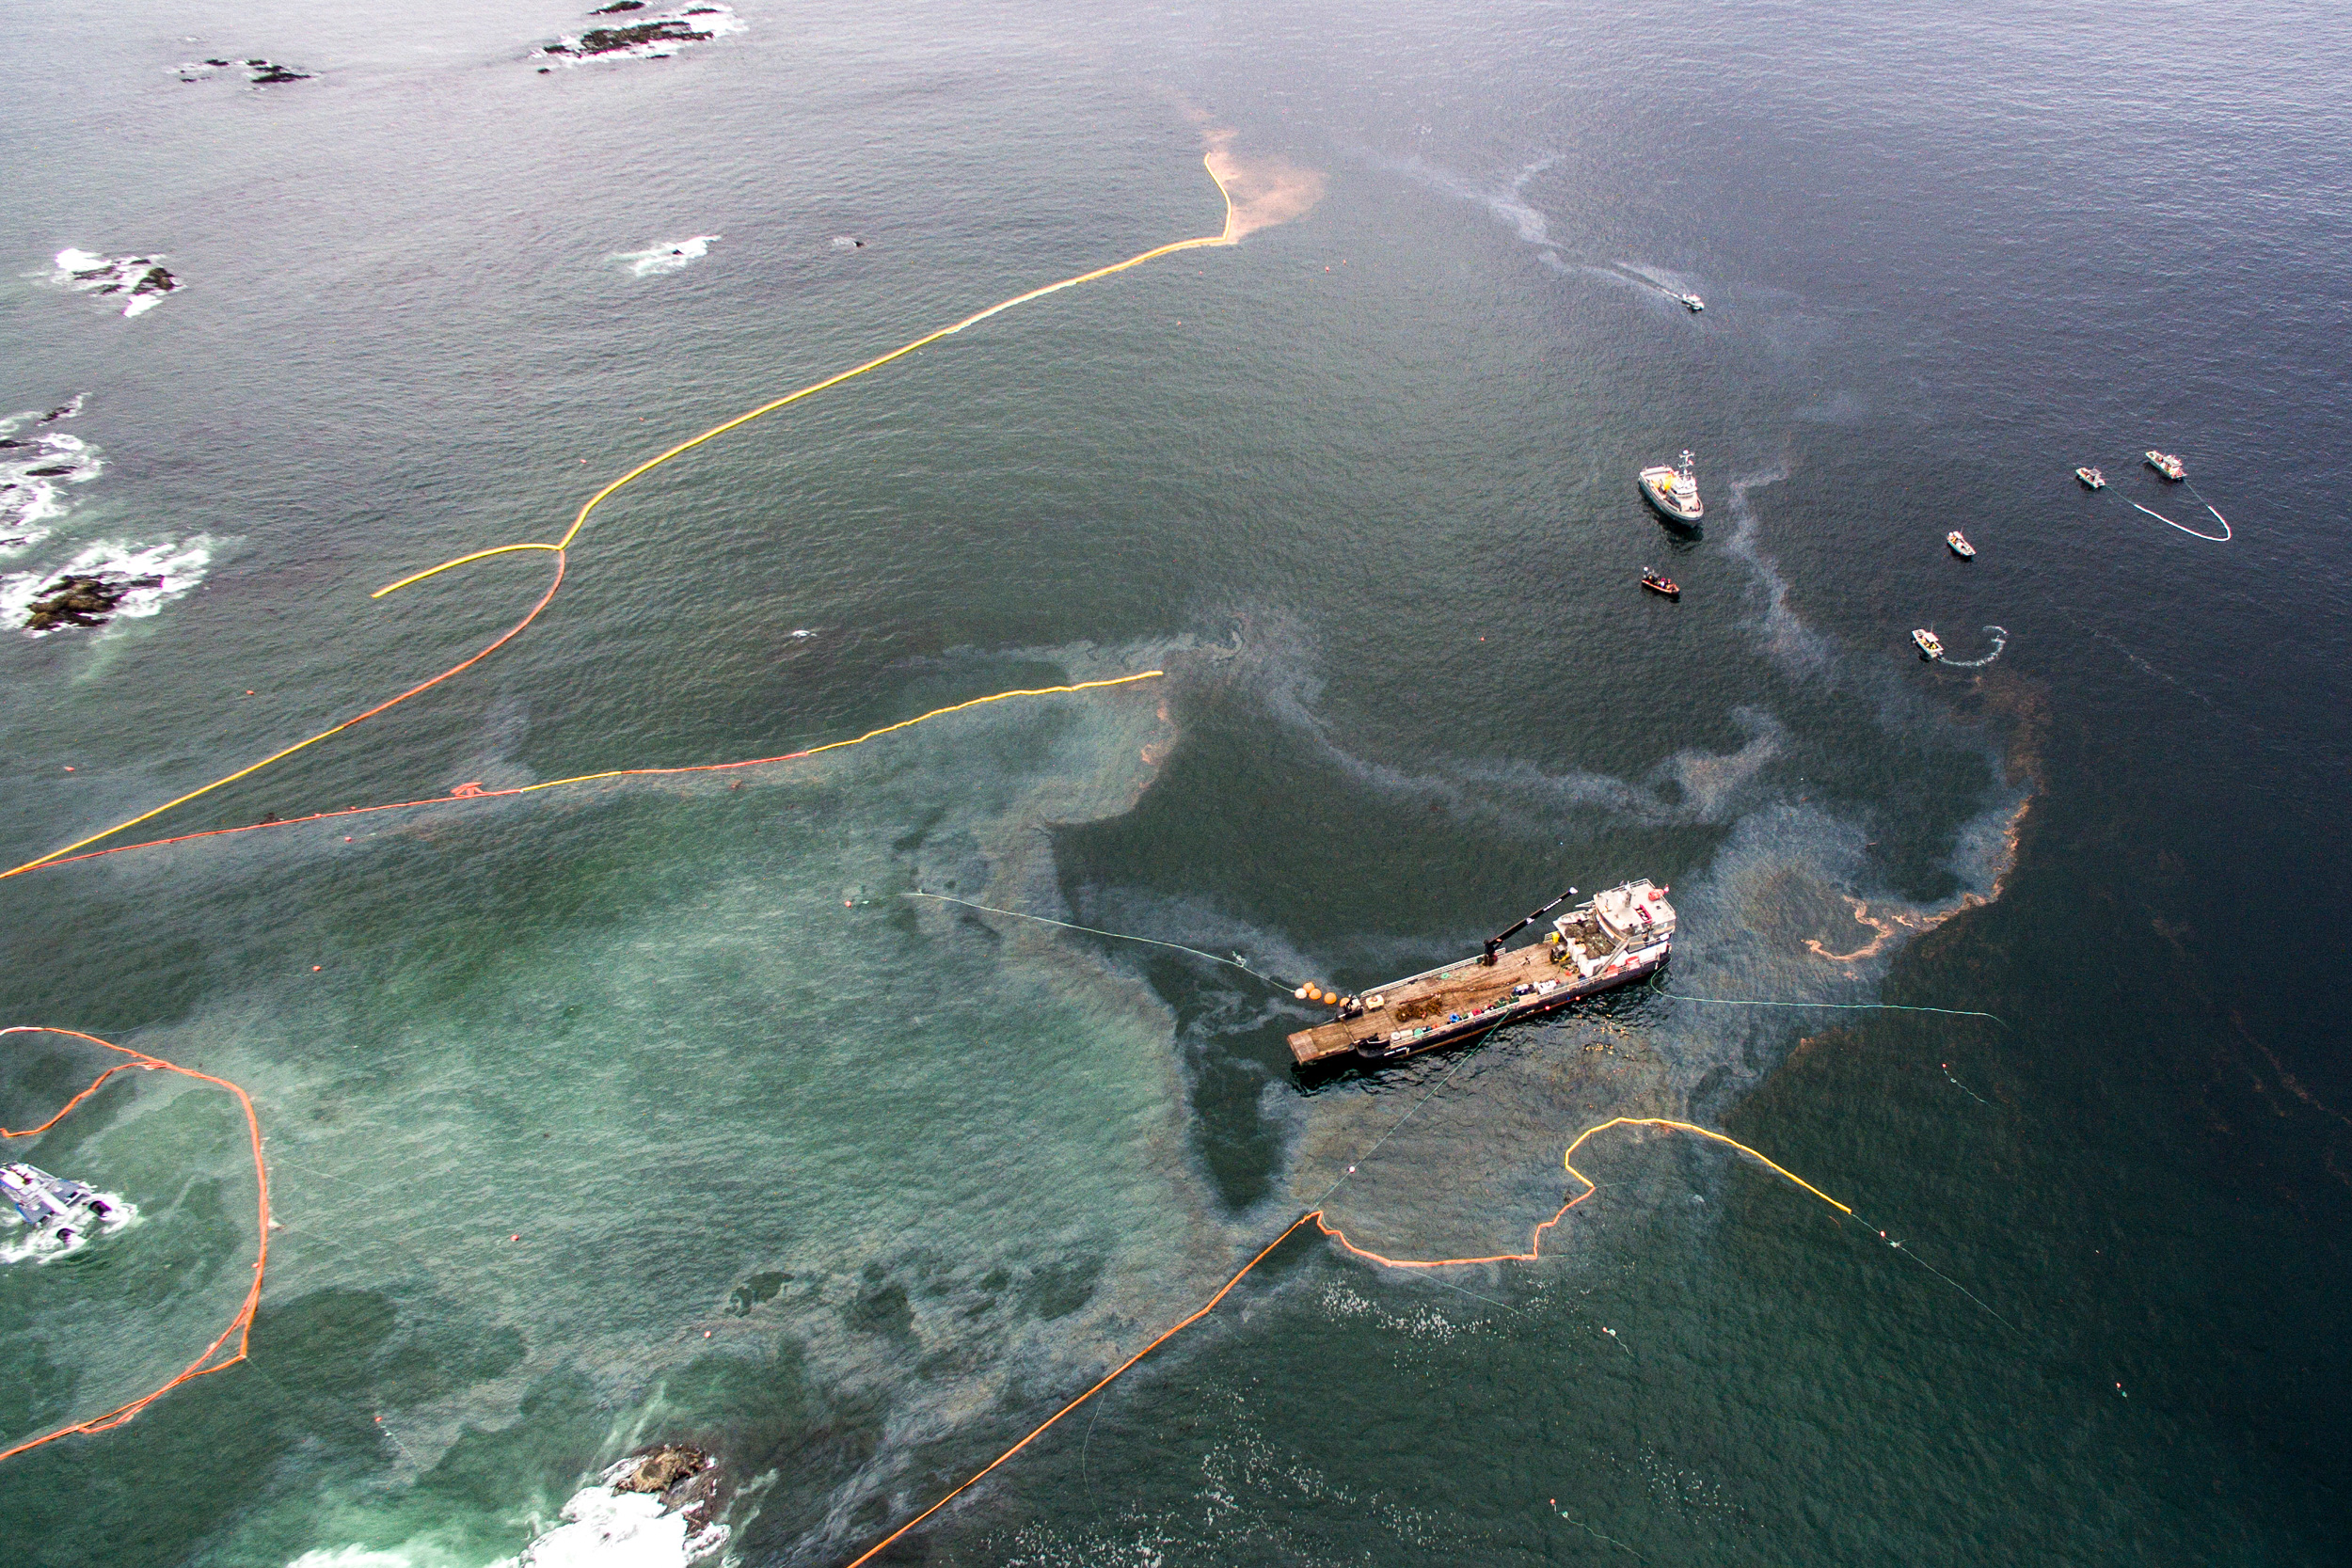 Aerial photo of the Nathan E. Steward oil spill near Bella Bella, British Columbia